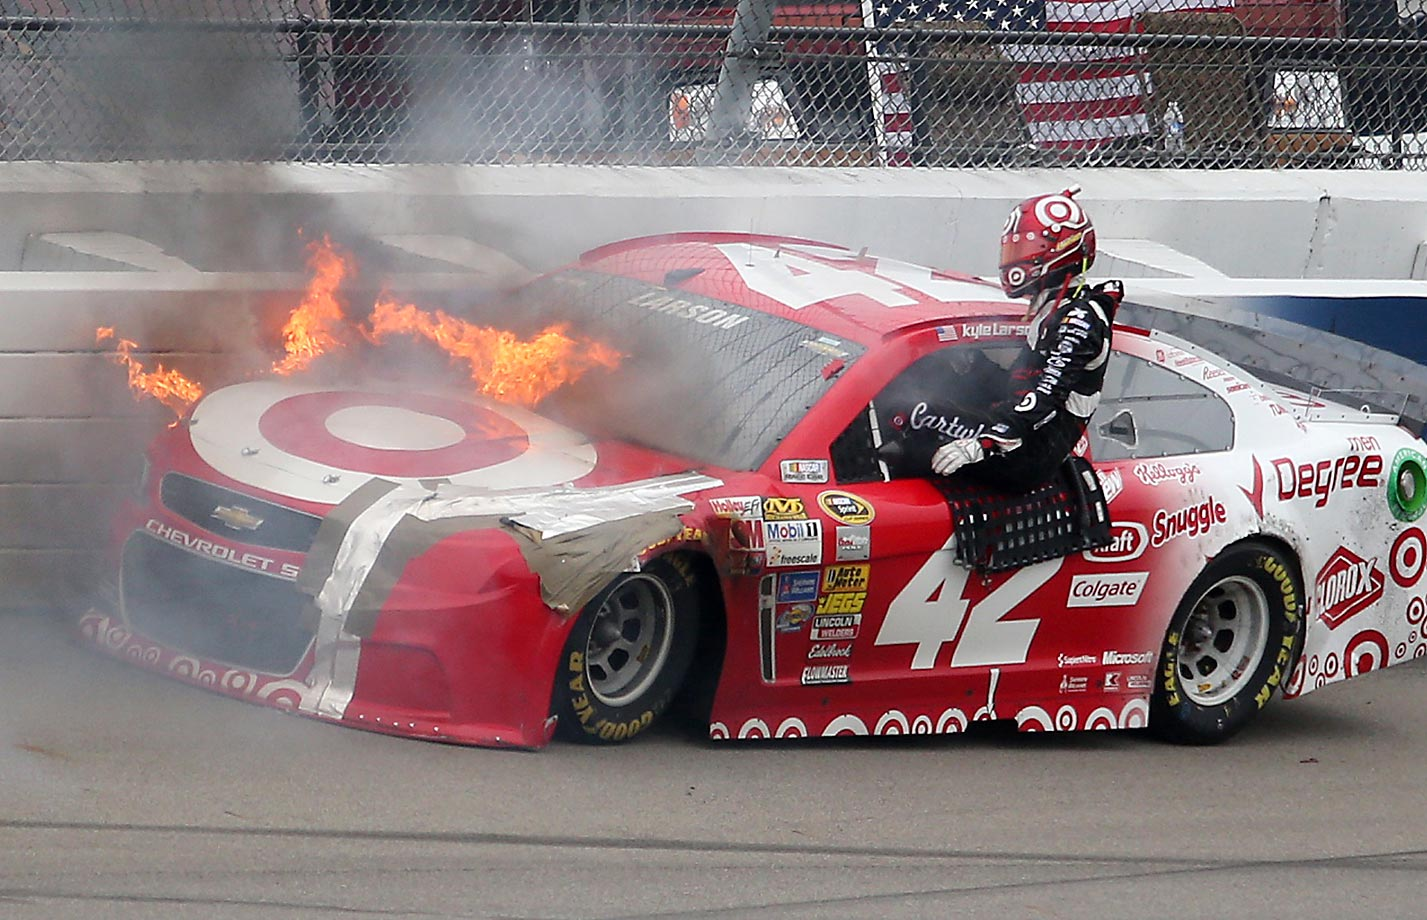 Kyle Larson quickly exits his car after it caught fire in a crash off Turn 4 of the NASCAR Sprint Cup Series Pure Michigan 400.